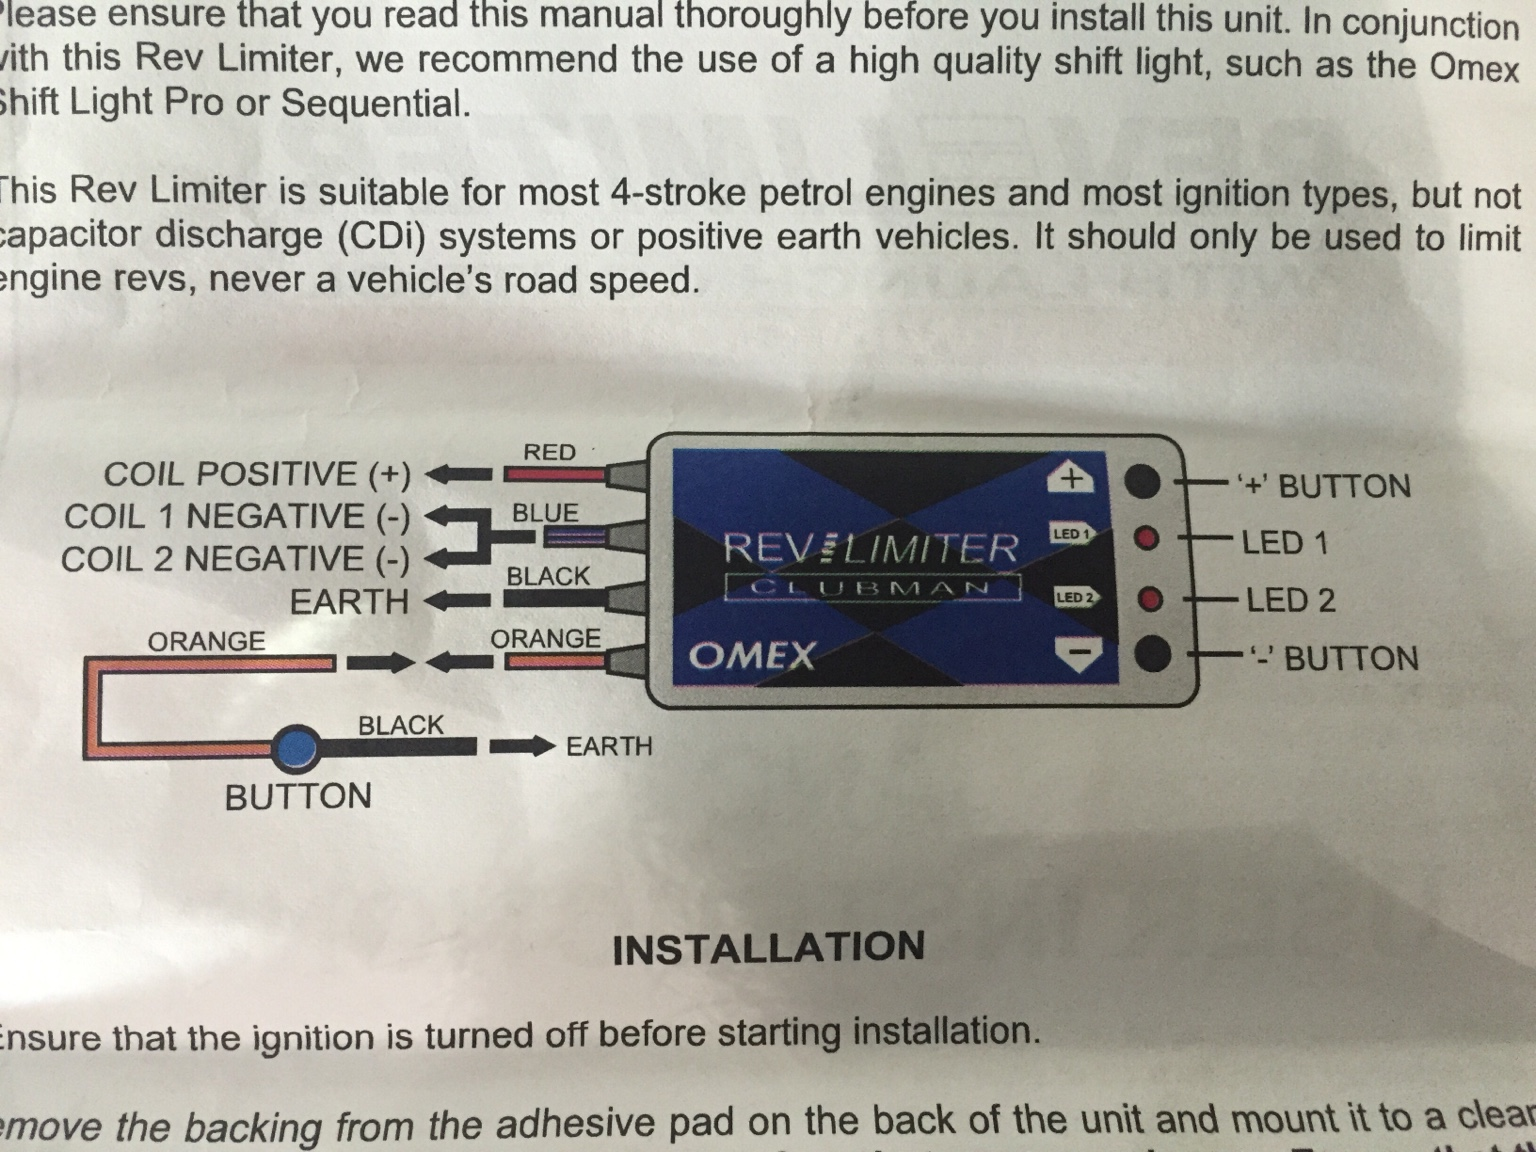 omex rev limiter instructions images all instruction examples omex rev limiter wiring diagram at Omex Rev Limiter Wiring Diagram